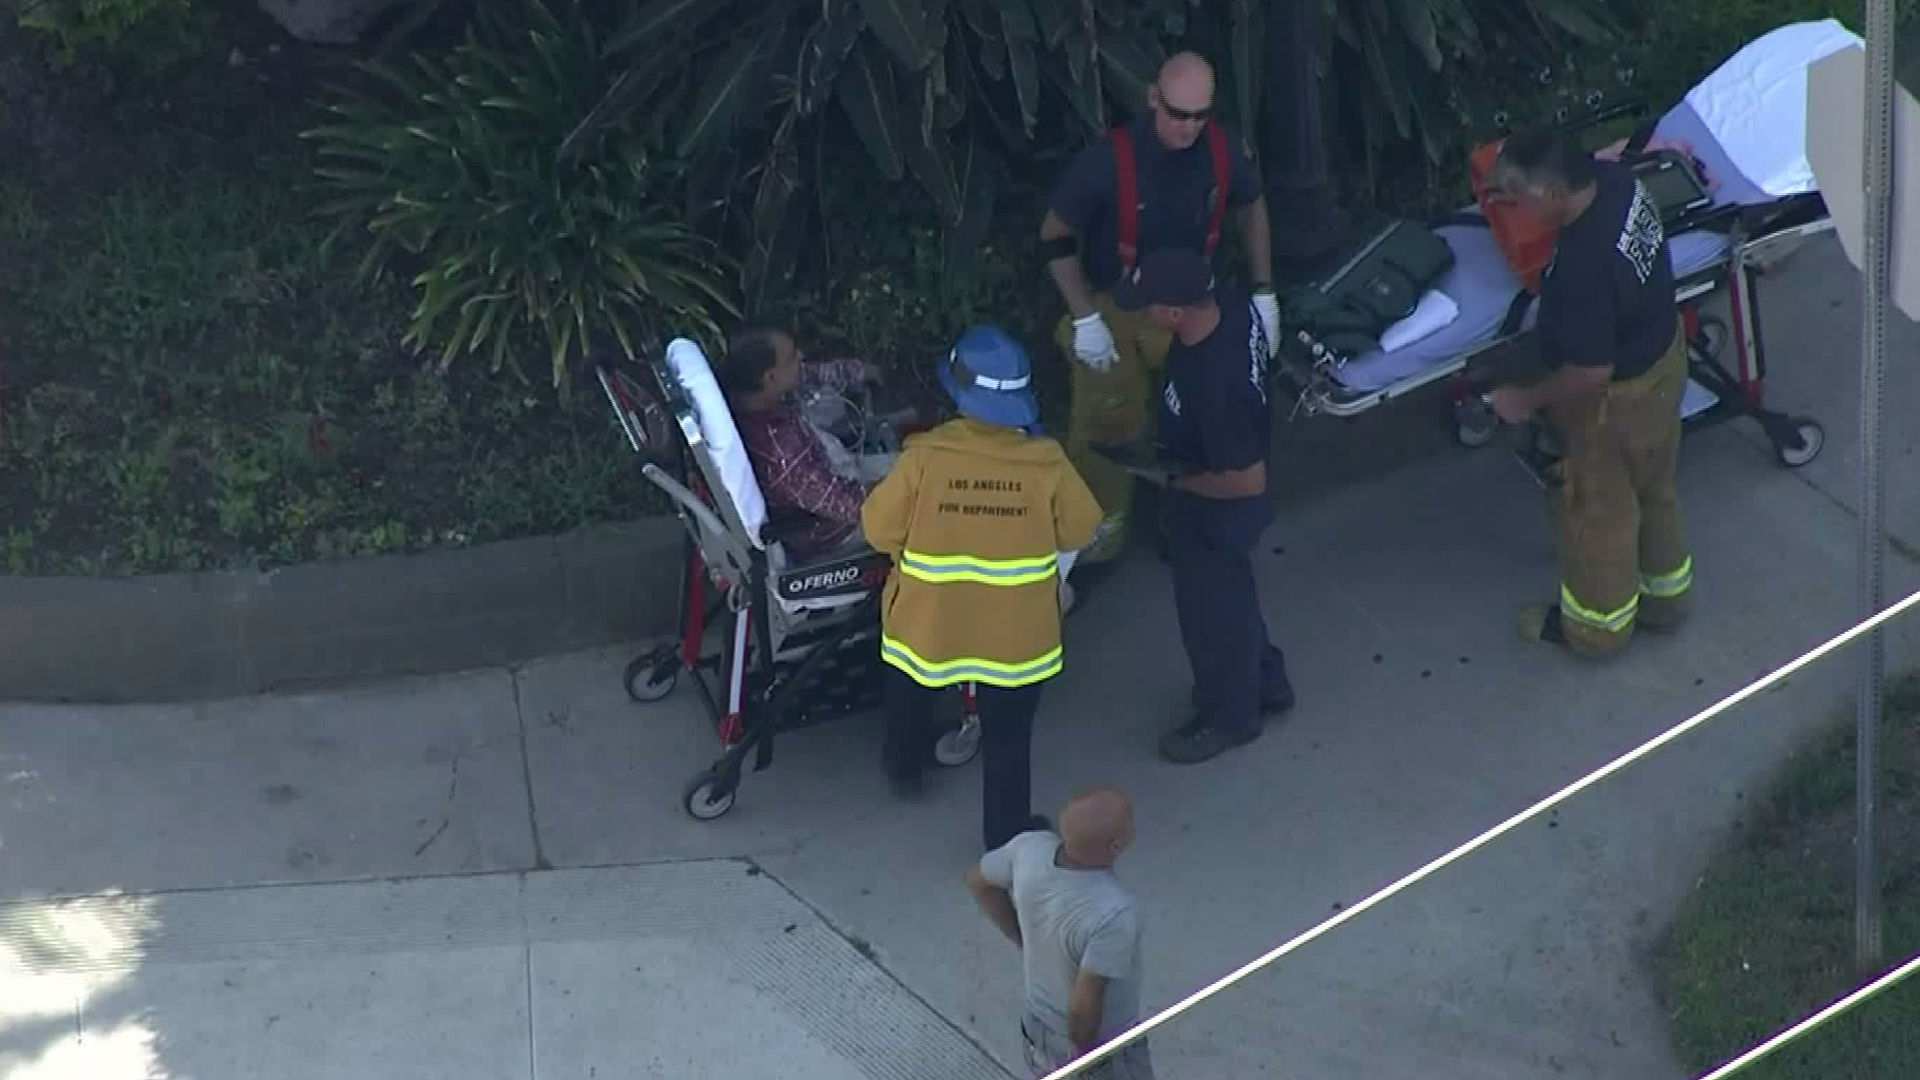 L.A. firefighters help a person hurt in a fire at an apartment building in Van Nuys on Aug. 9, 2017. (Credit: KTLA)